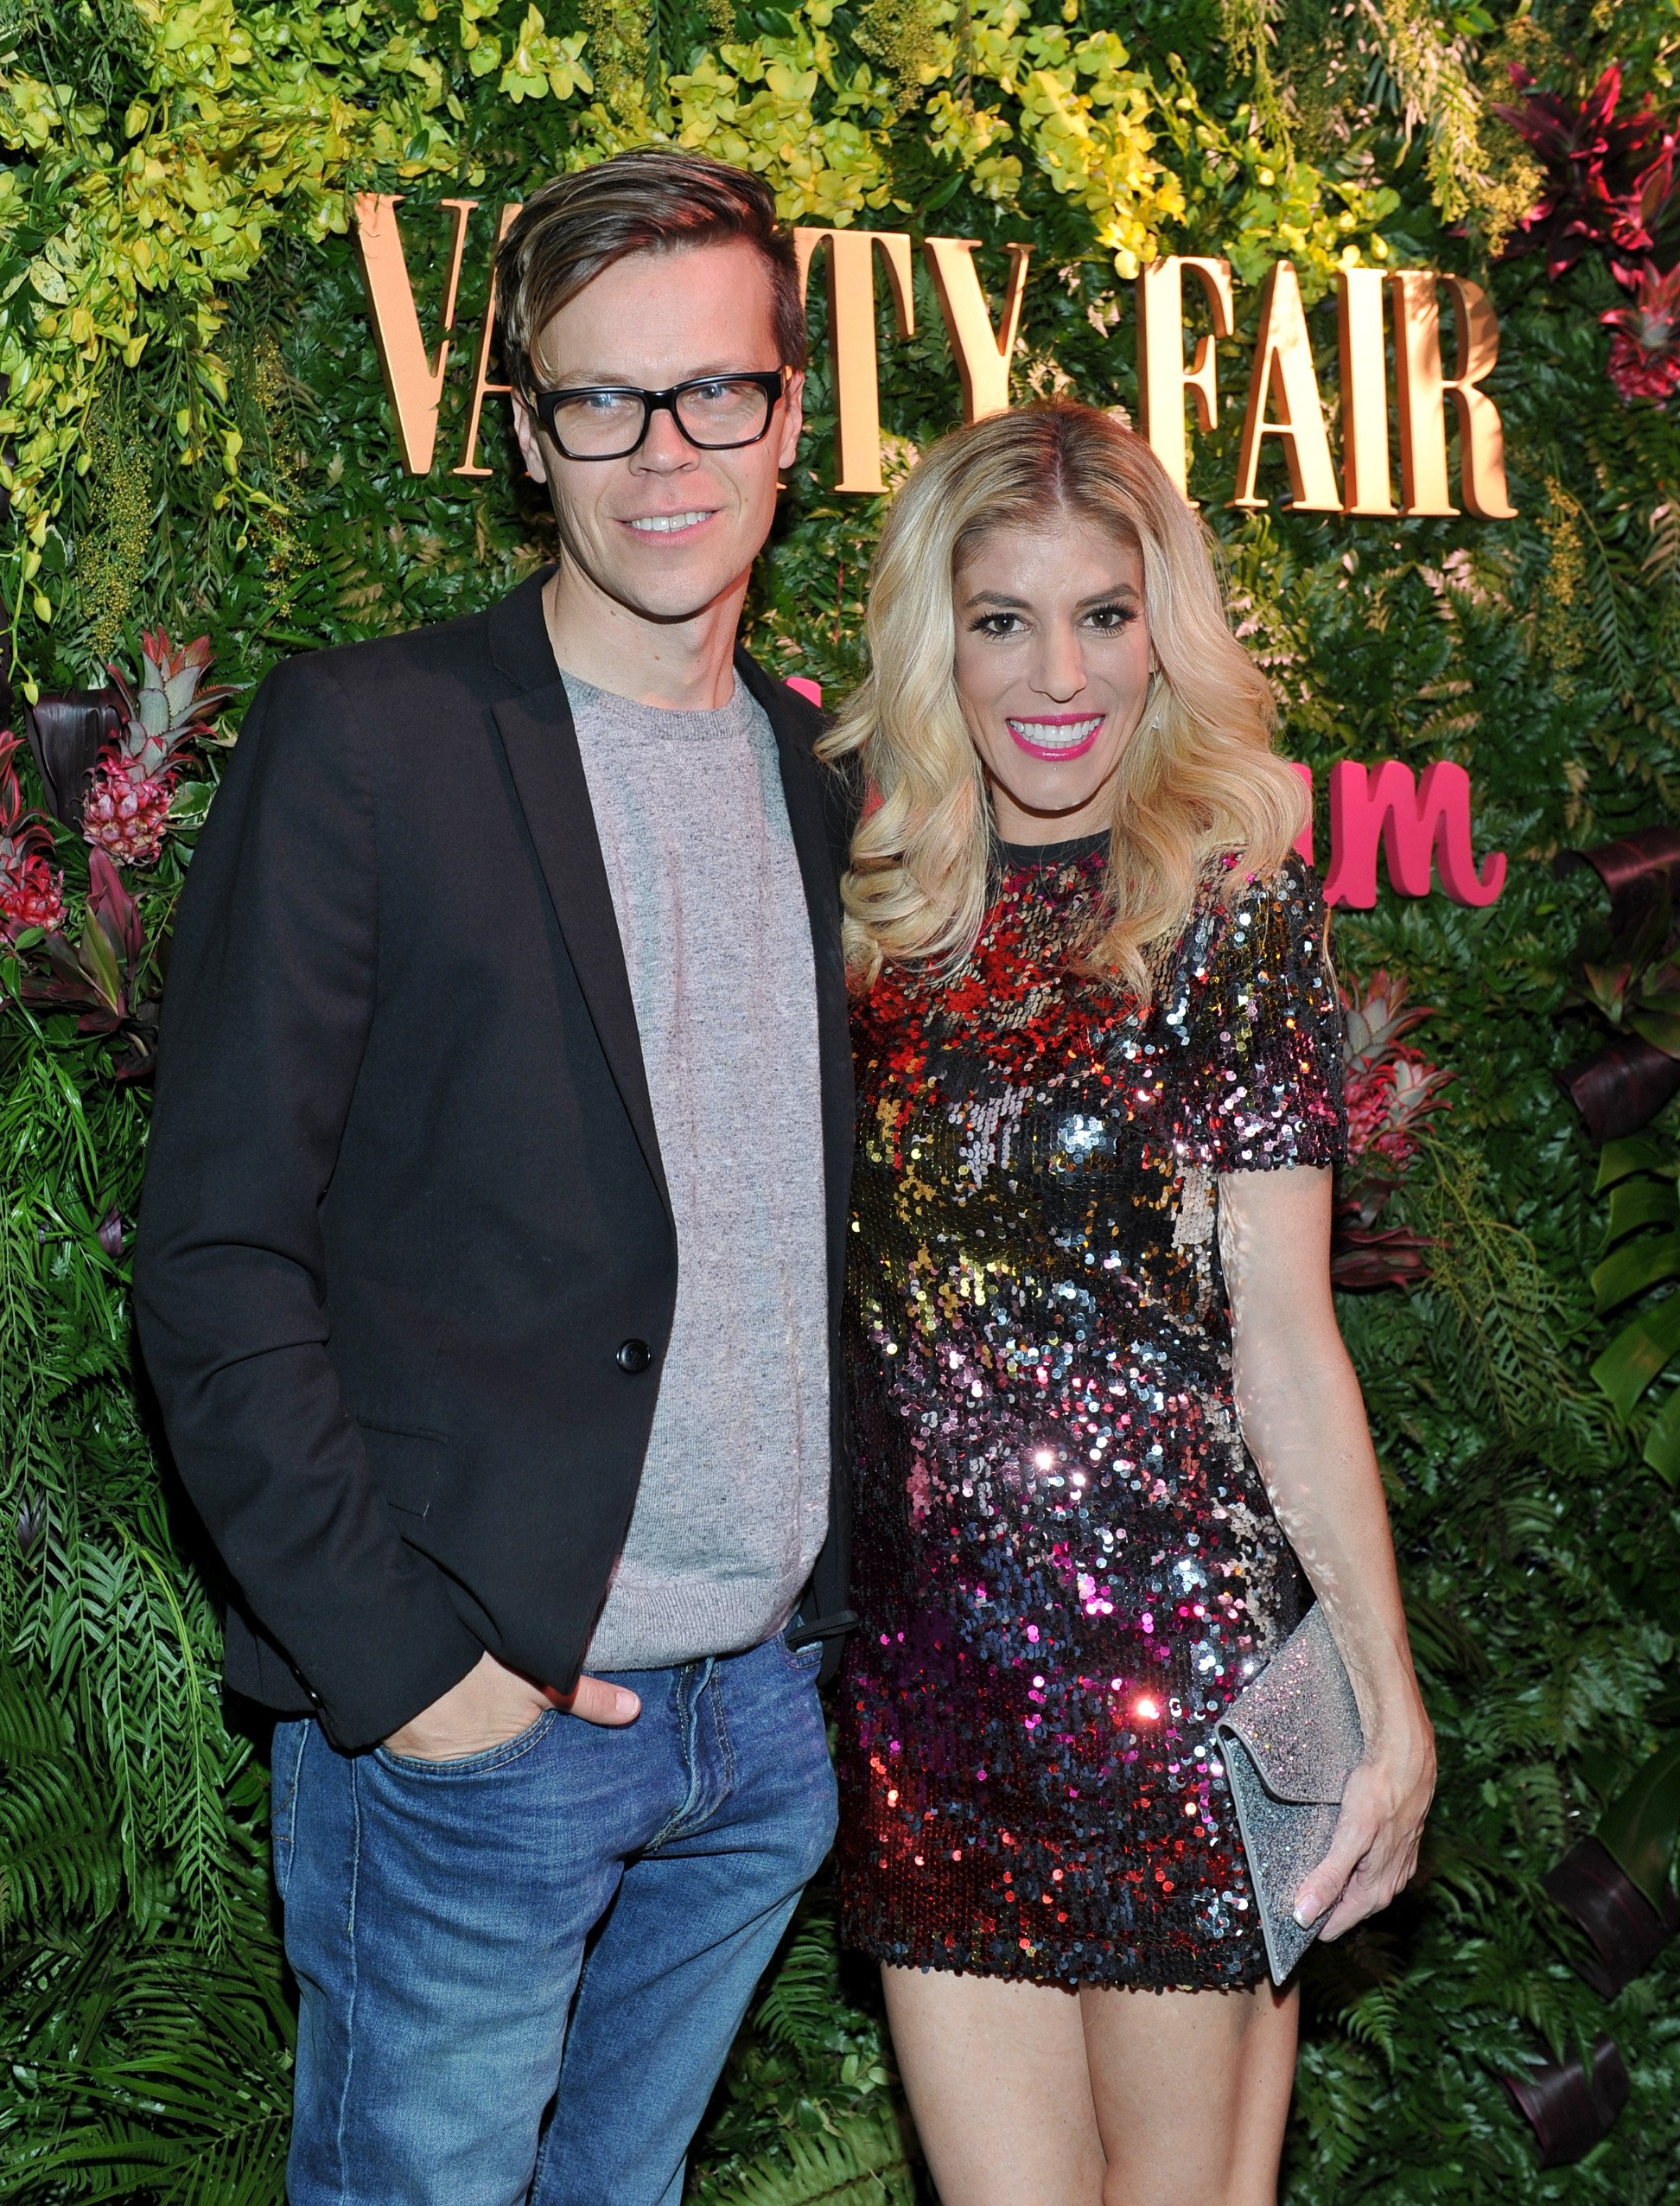 Rebecca Zamolo with husband Matt Slays at Vanity Fair x Instagram at Mel's Diner during Golden Globes Weekend in West Hollywood, California   Photo: Donato Sardella/Getty Images for Vanity Fair/Instagram